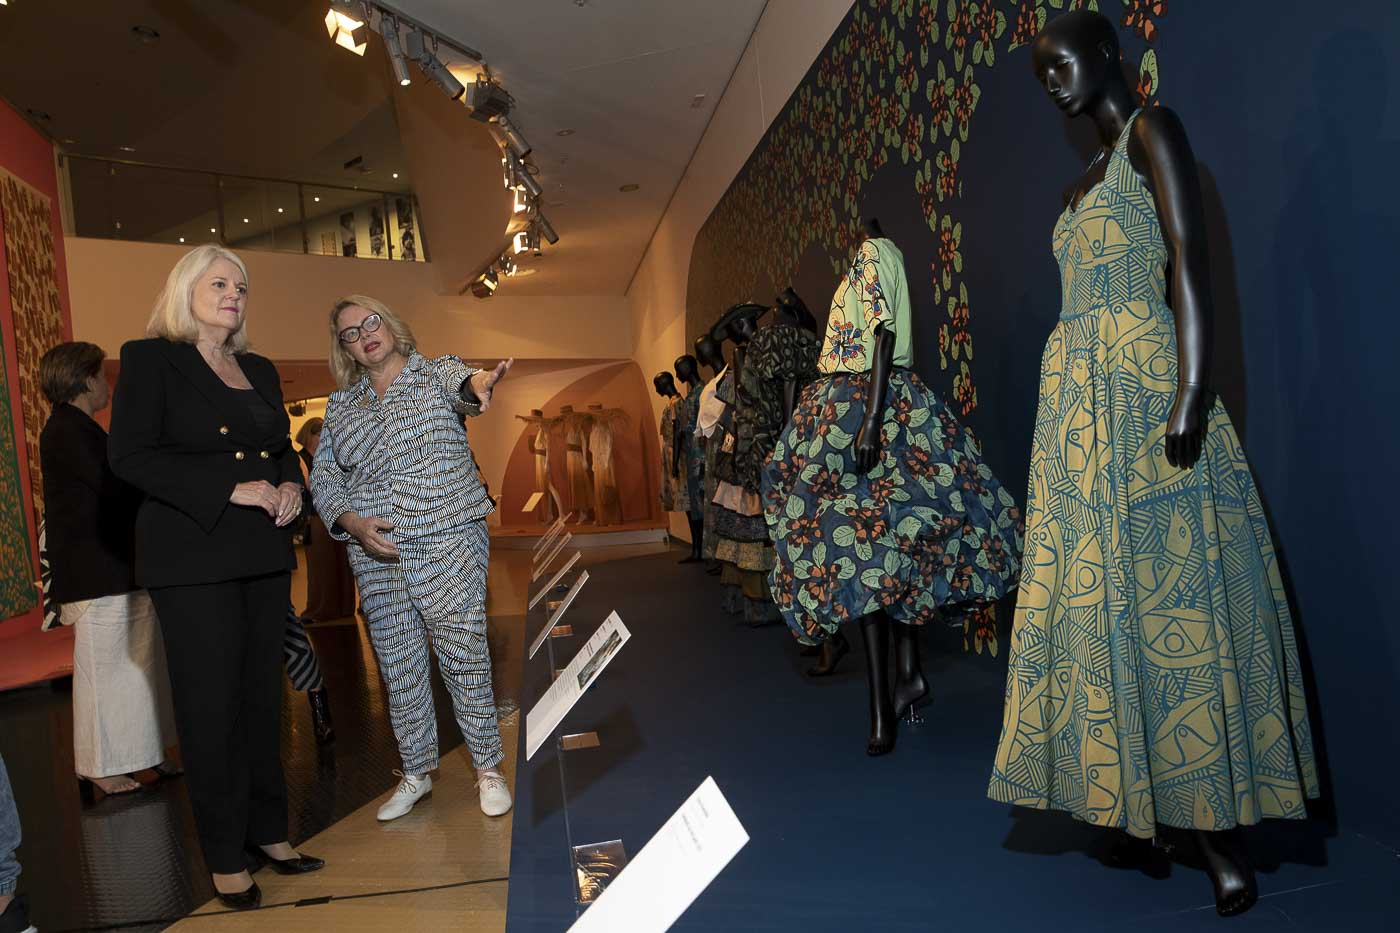 Two women discuss colourful fashion clothing displayed on mannequins in an exhibition space. - click to view larger image